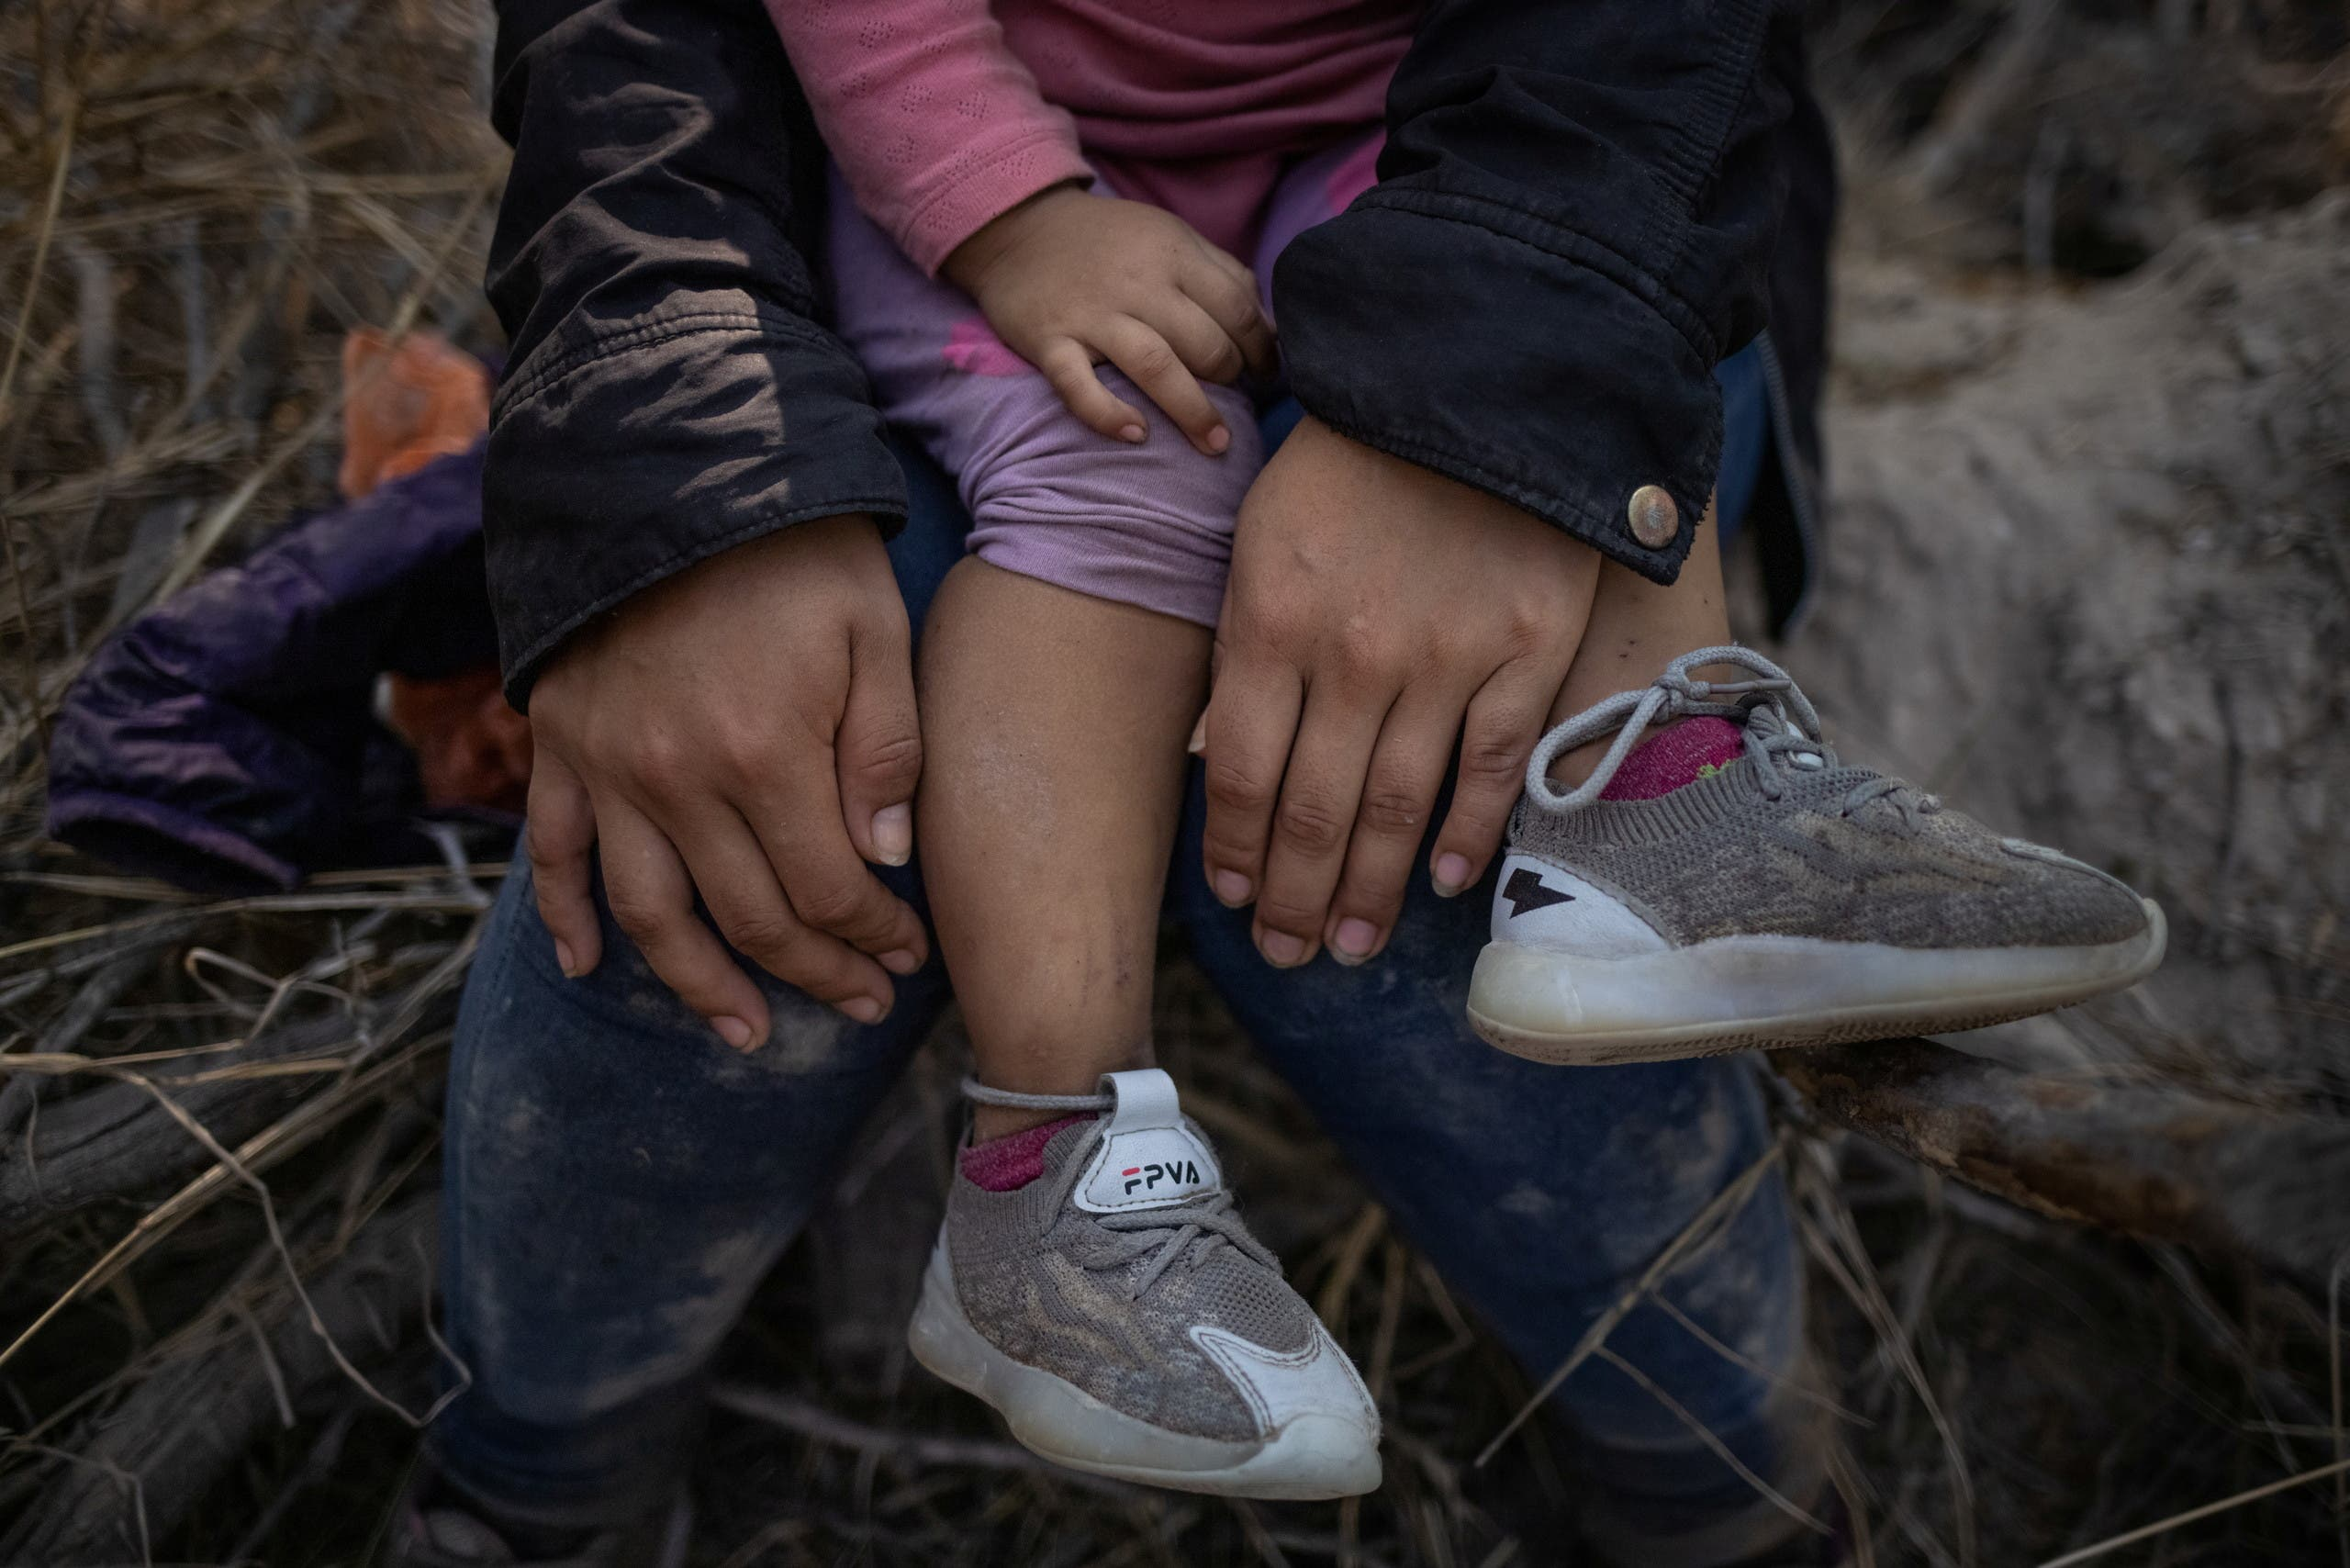 An asylum seeking migrant from Central America holds his child after a group of 107 crossed the Rio Grande river into the United States from Mexico on rafts in Penitas, Texas, U.S., March 26, 2021. Picture taken March 26, 2021. (Reuters)